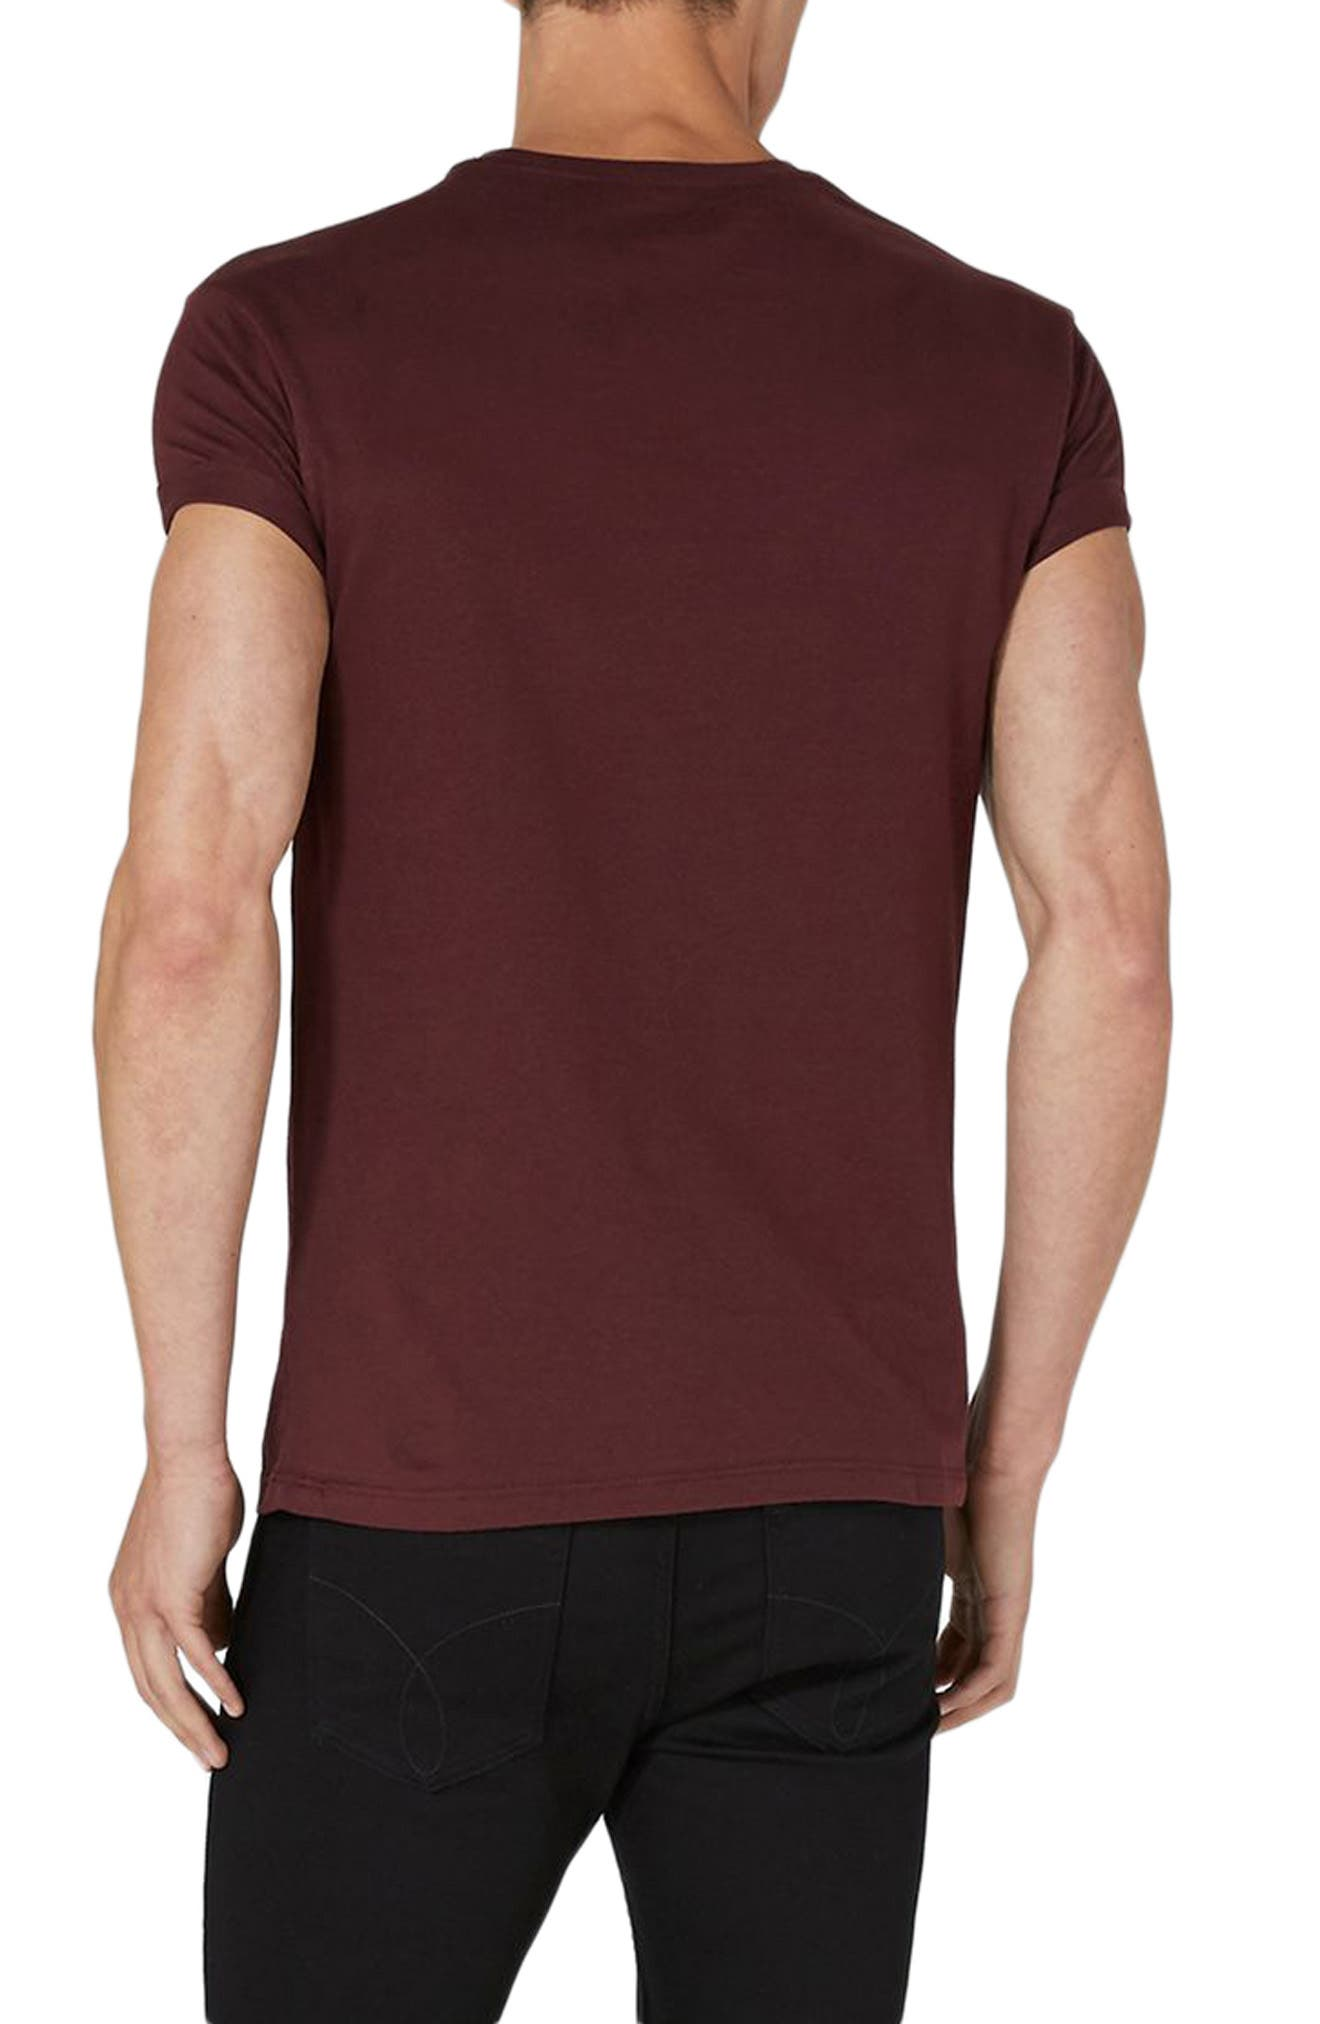 Muscle Fit Roller T-Shirt,                             Alternate thumbnail 2, color,                             Burgundy